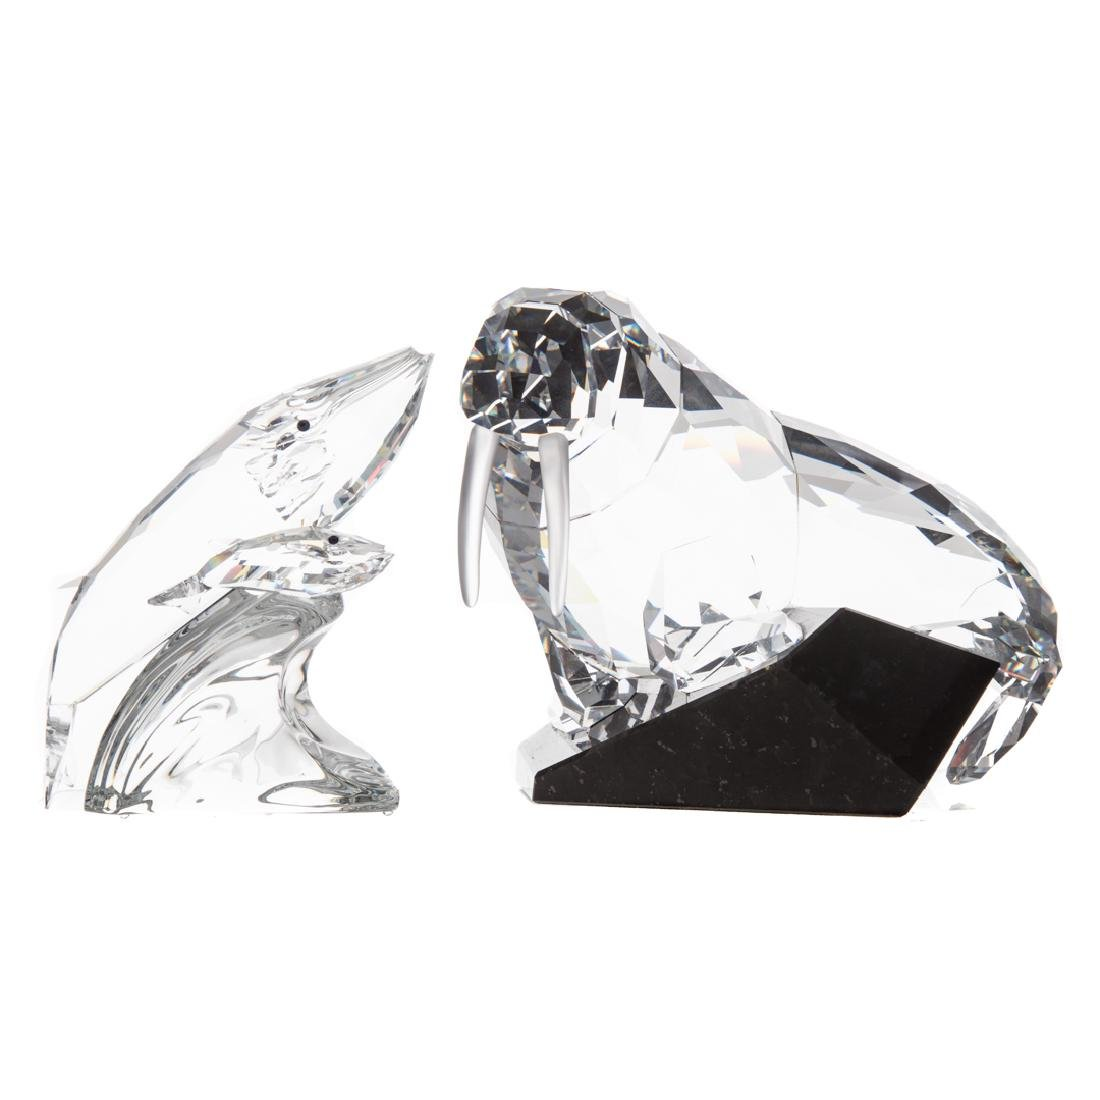 Swarovski crystal walrus and whale group